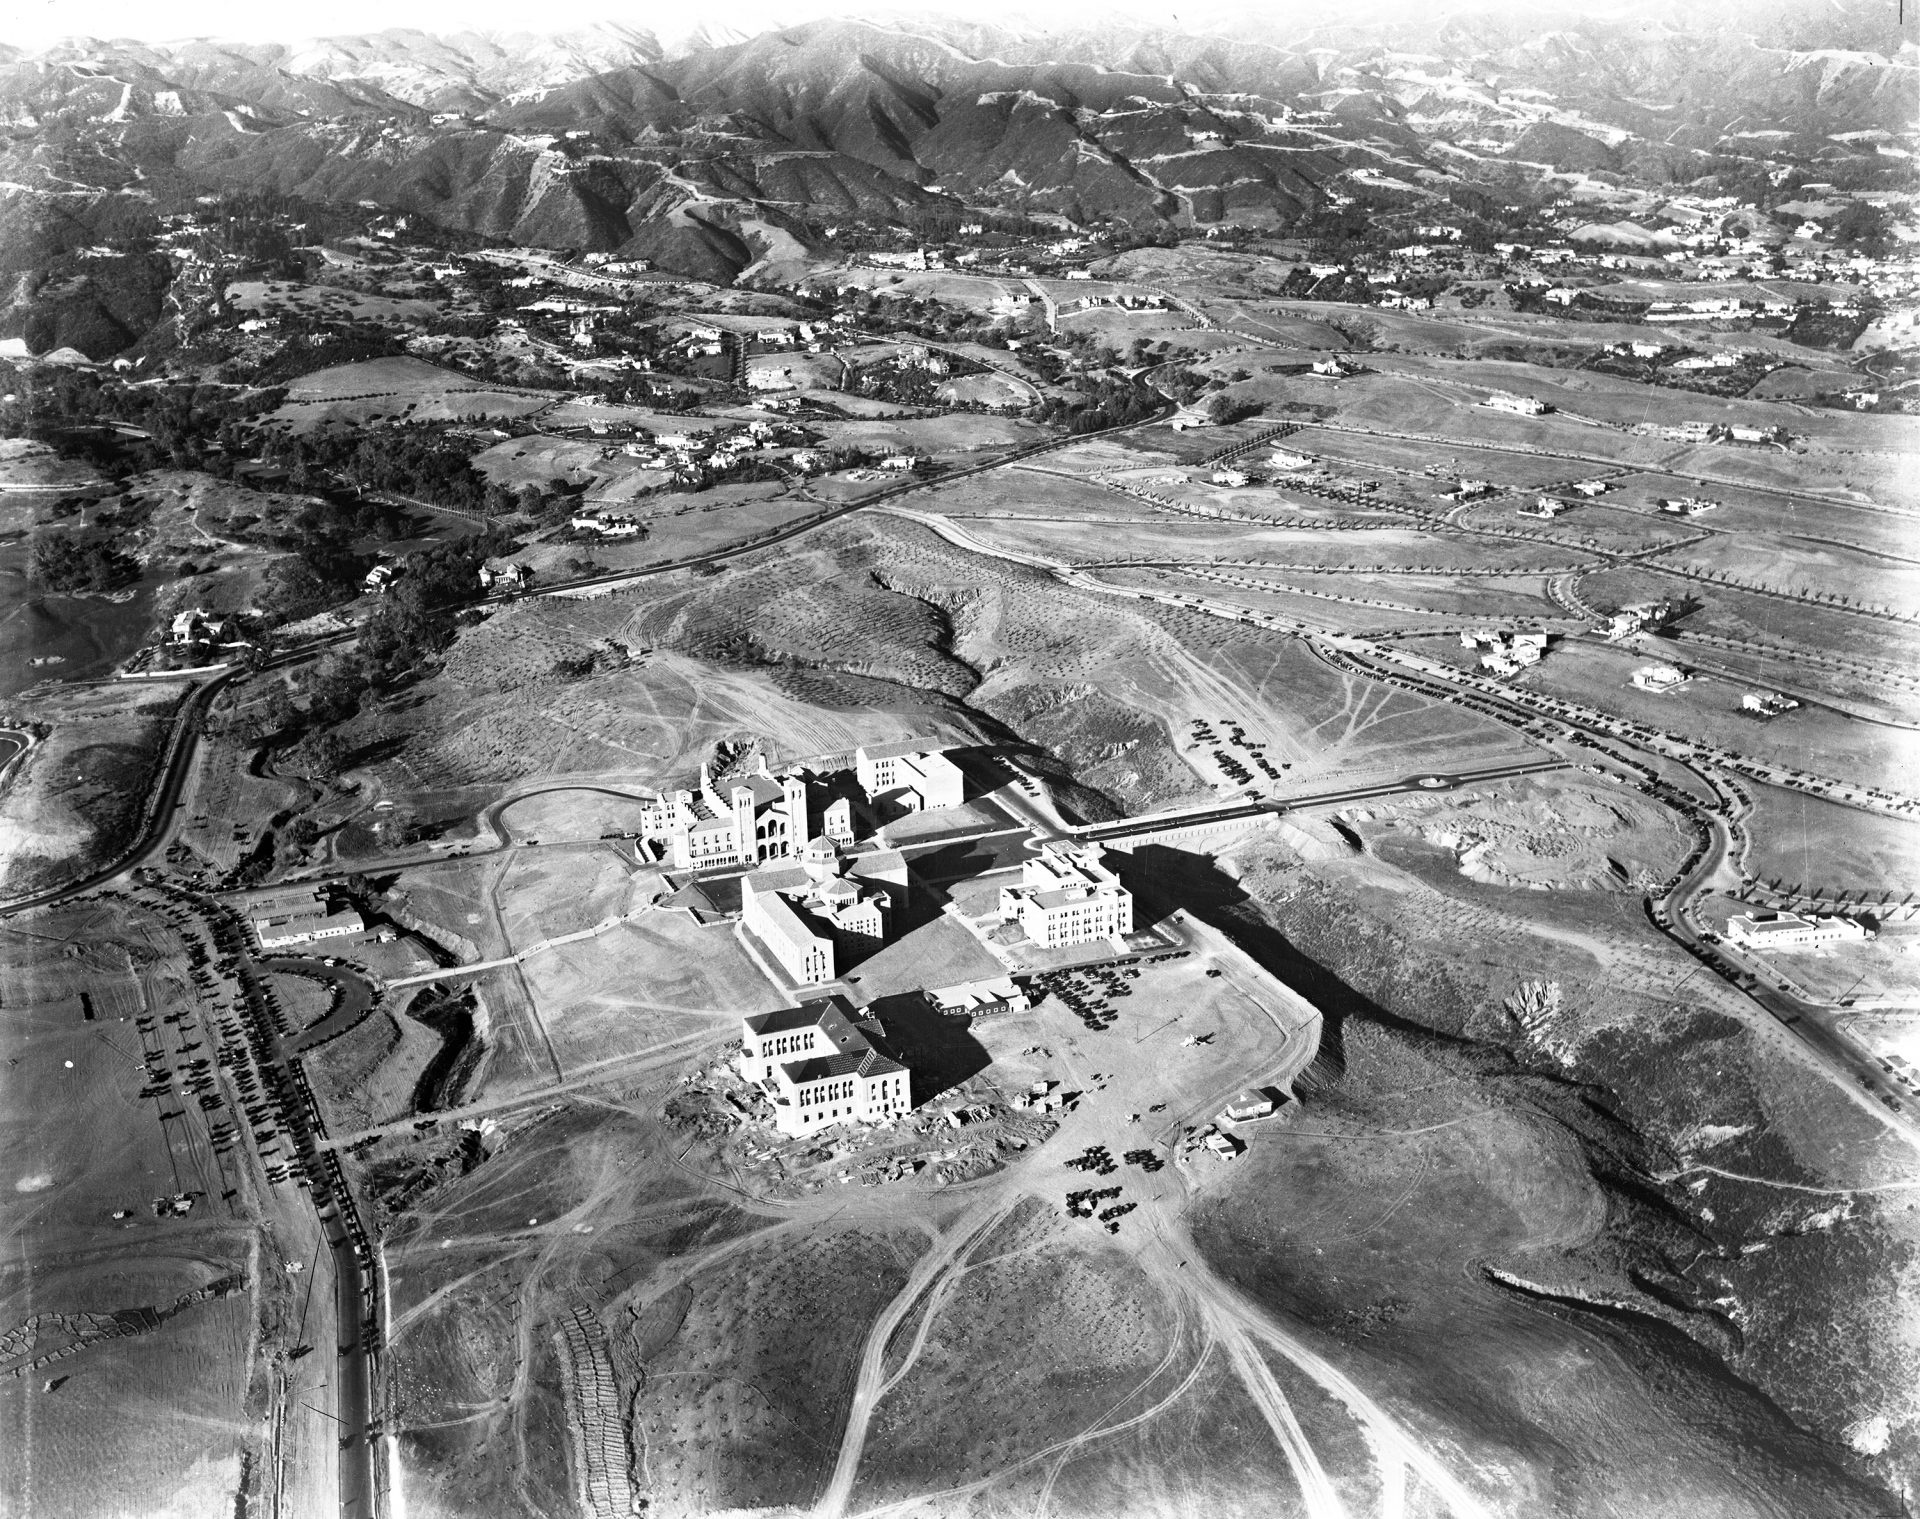 Black and white aerial map of rural UCLA campus